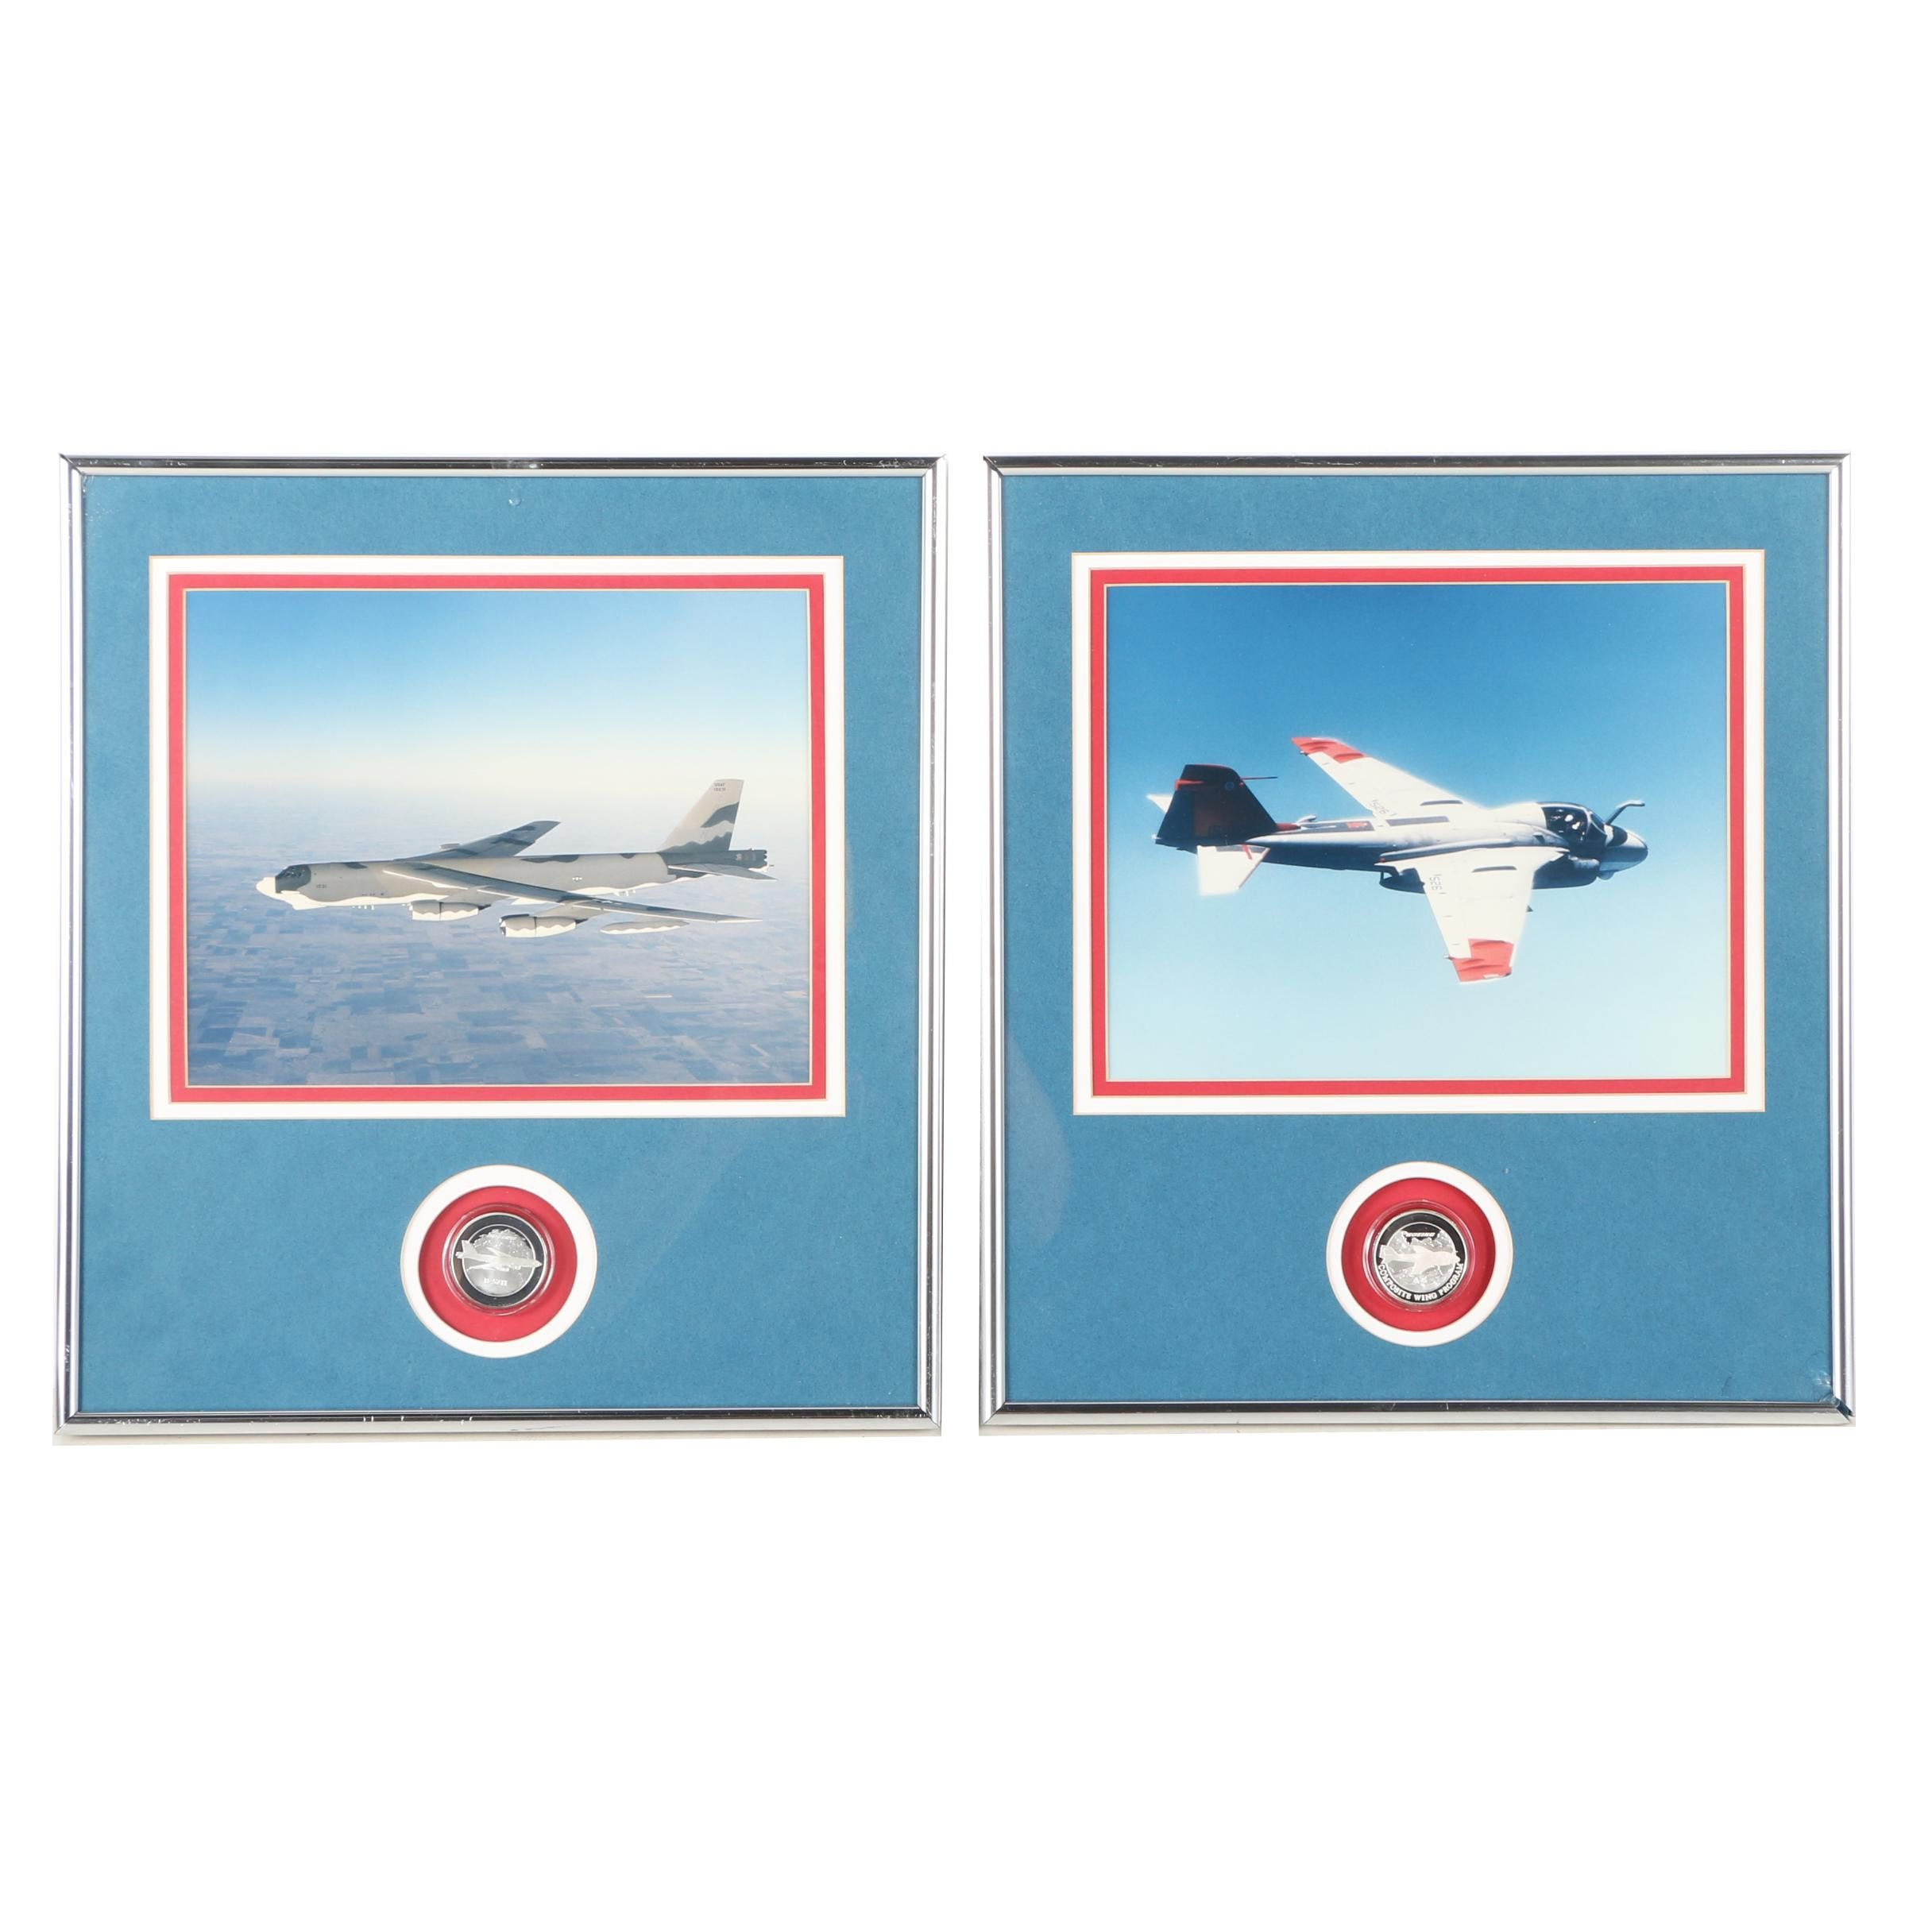 Two Framed Color Photographs of Boeing Aircraft